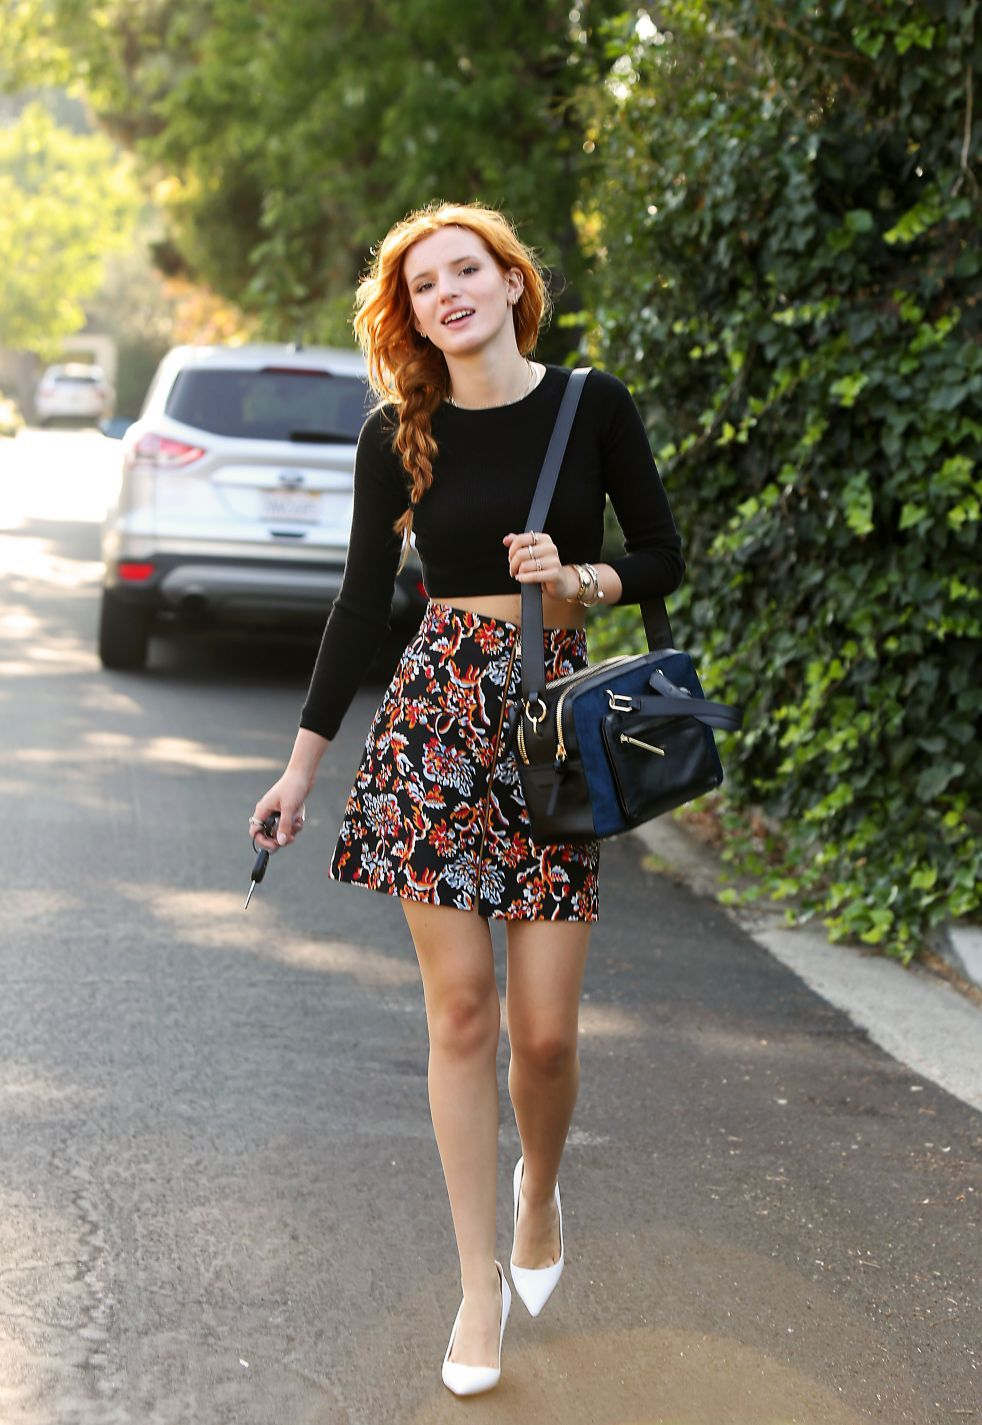 It up bella thorne sports a grown up look in elegant peplum dress - Bella Thorne Rocked A Black Knit Crop Styling It With A Floral Zara A Line Skirt An Henri Bendel Satchel And White Pumps